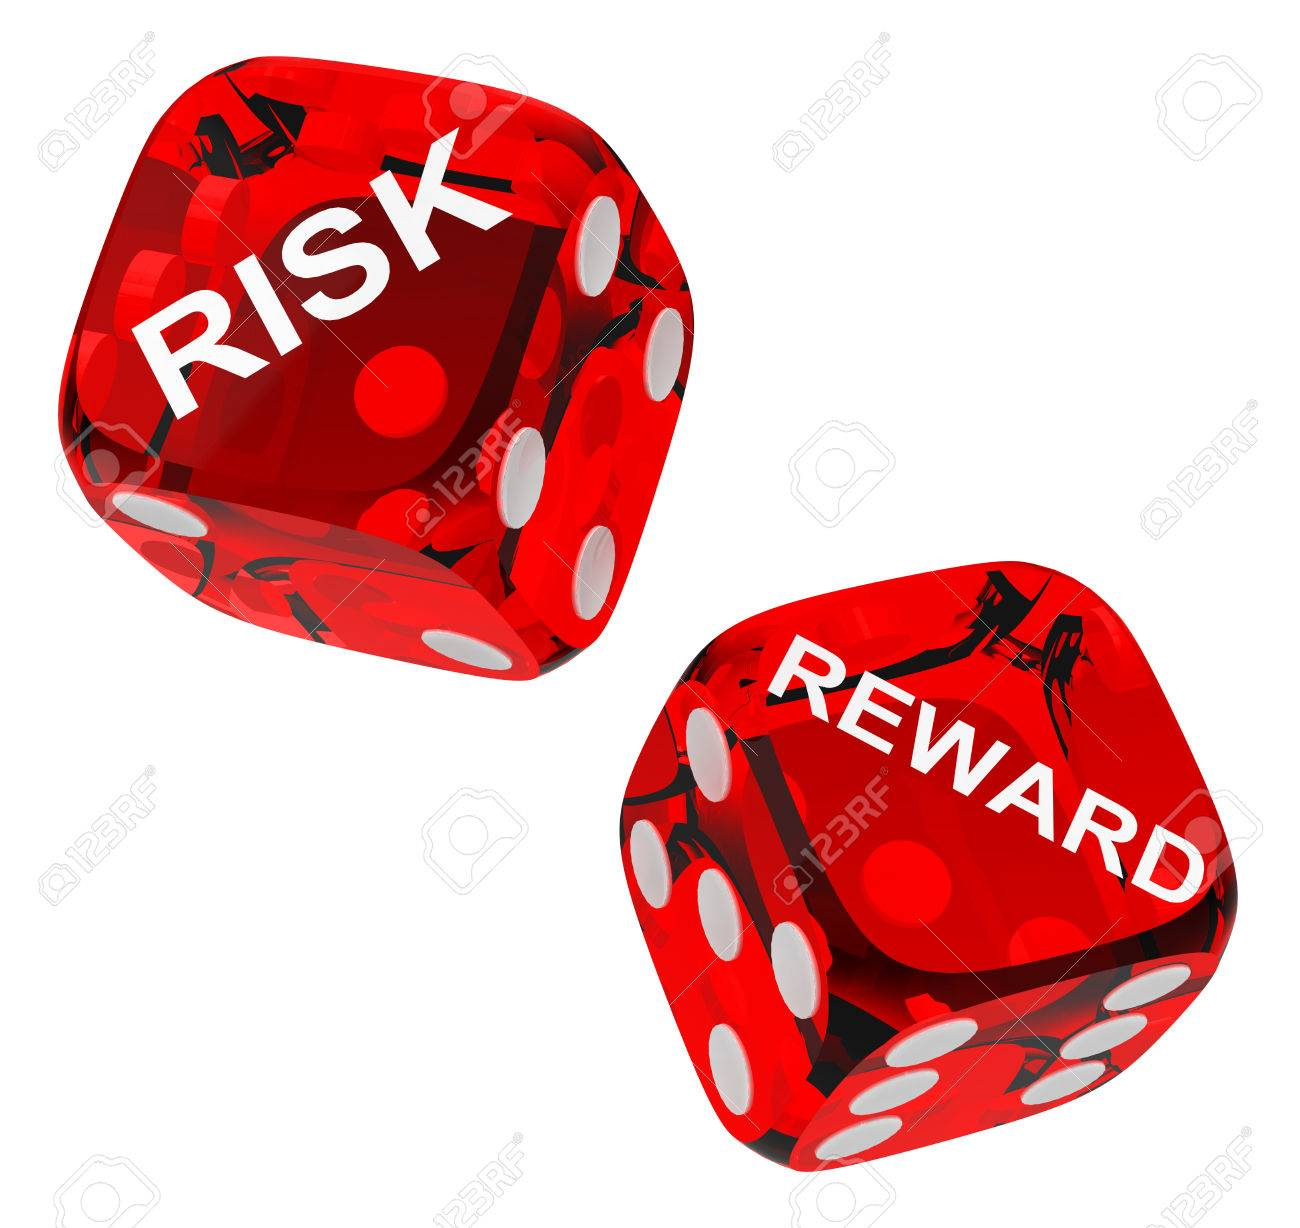 risk and reward dices - 28570394